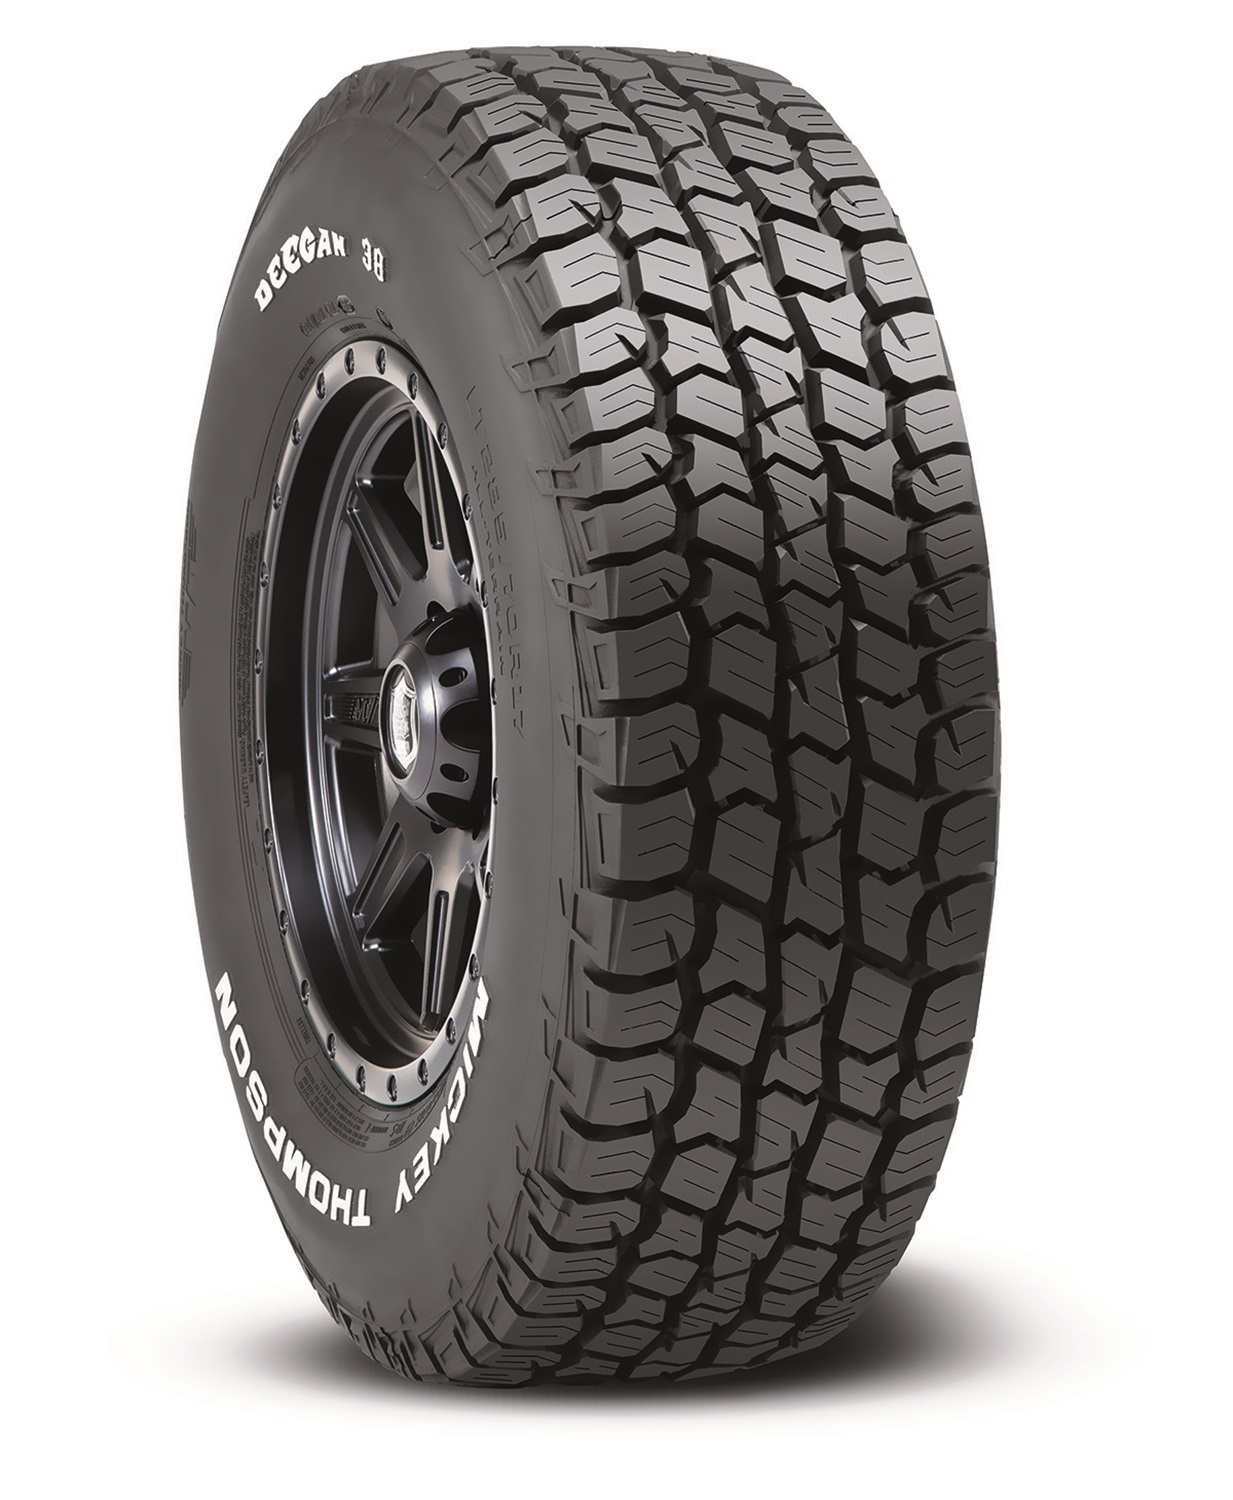 Mickey Thompson 90000035201 Mickey Thompson Deegan 38 All-Terrain Tire